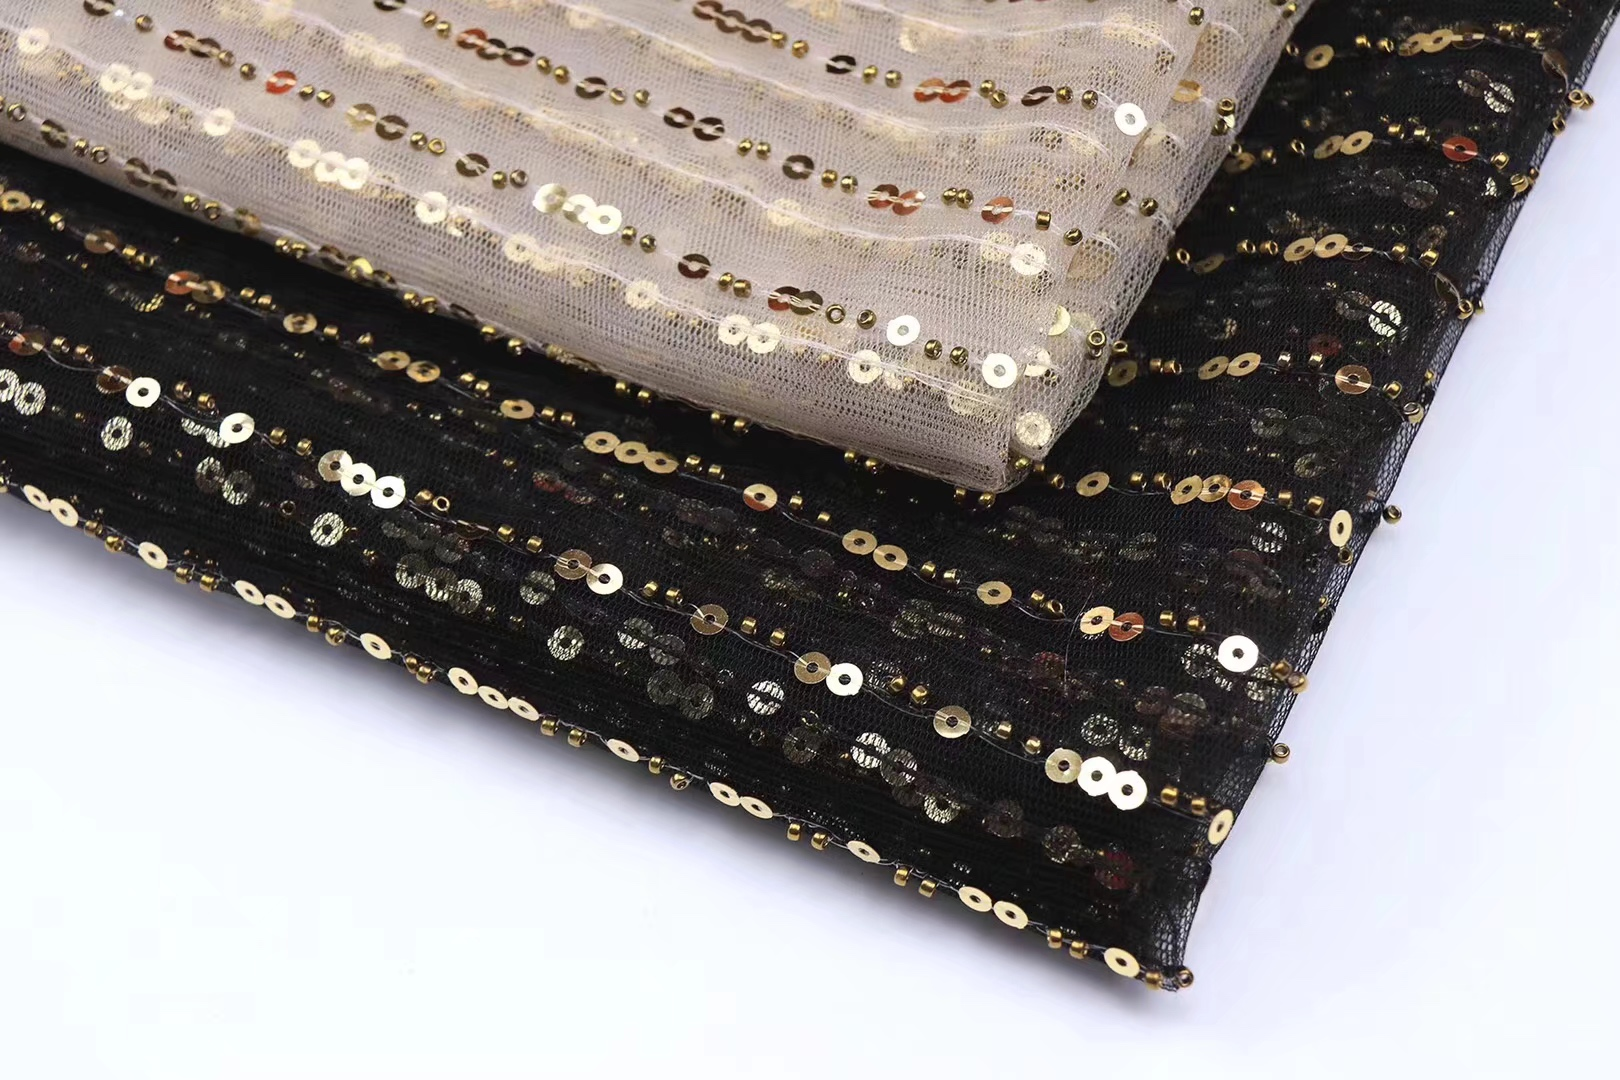 BEAUTIFICAL sequins lace fabric african tulle lace fabrics black mesh lace fabric with gold sequins for dress 5yards lot RFN96 in Lace from Home Garden